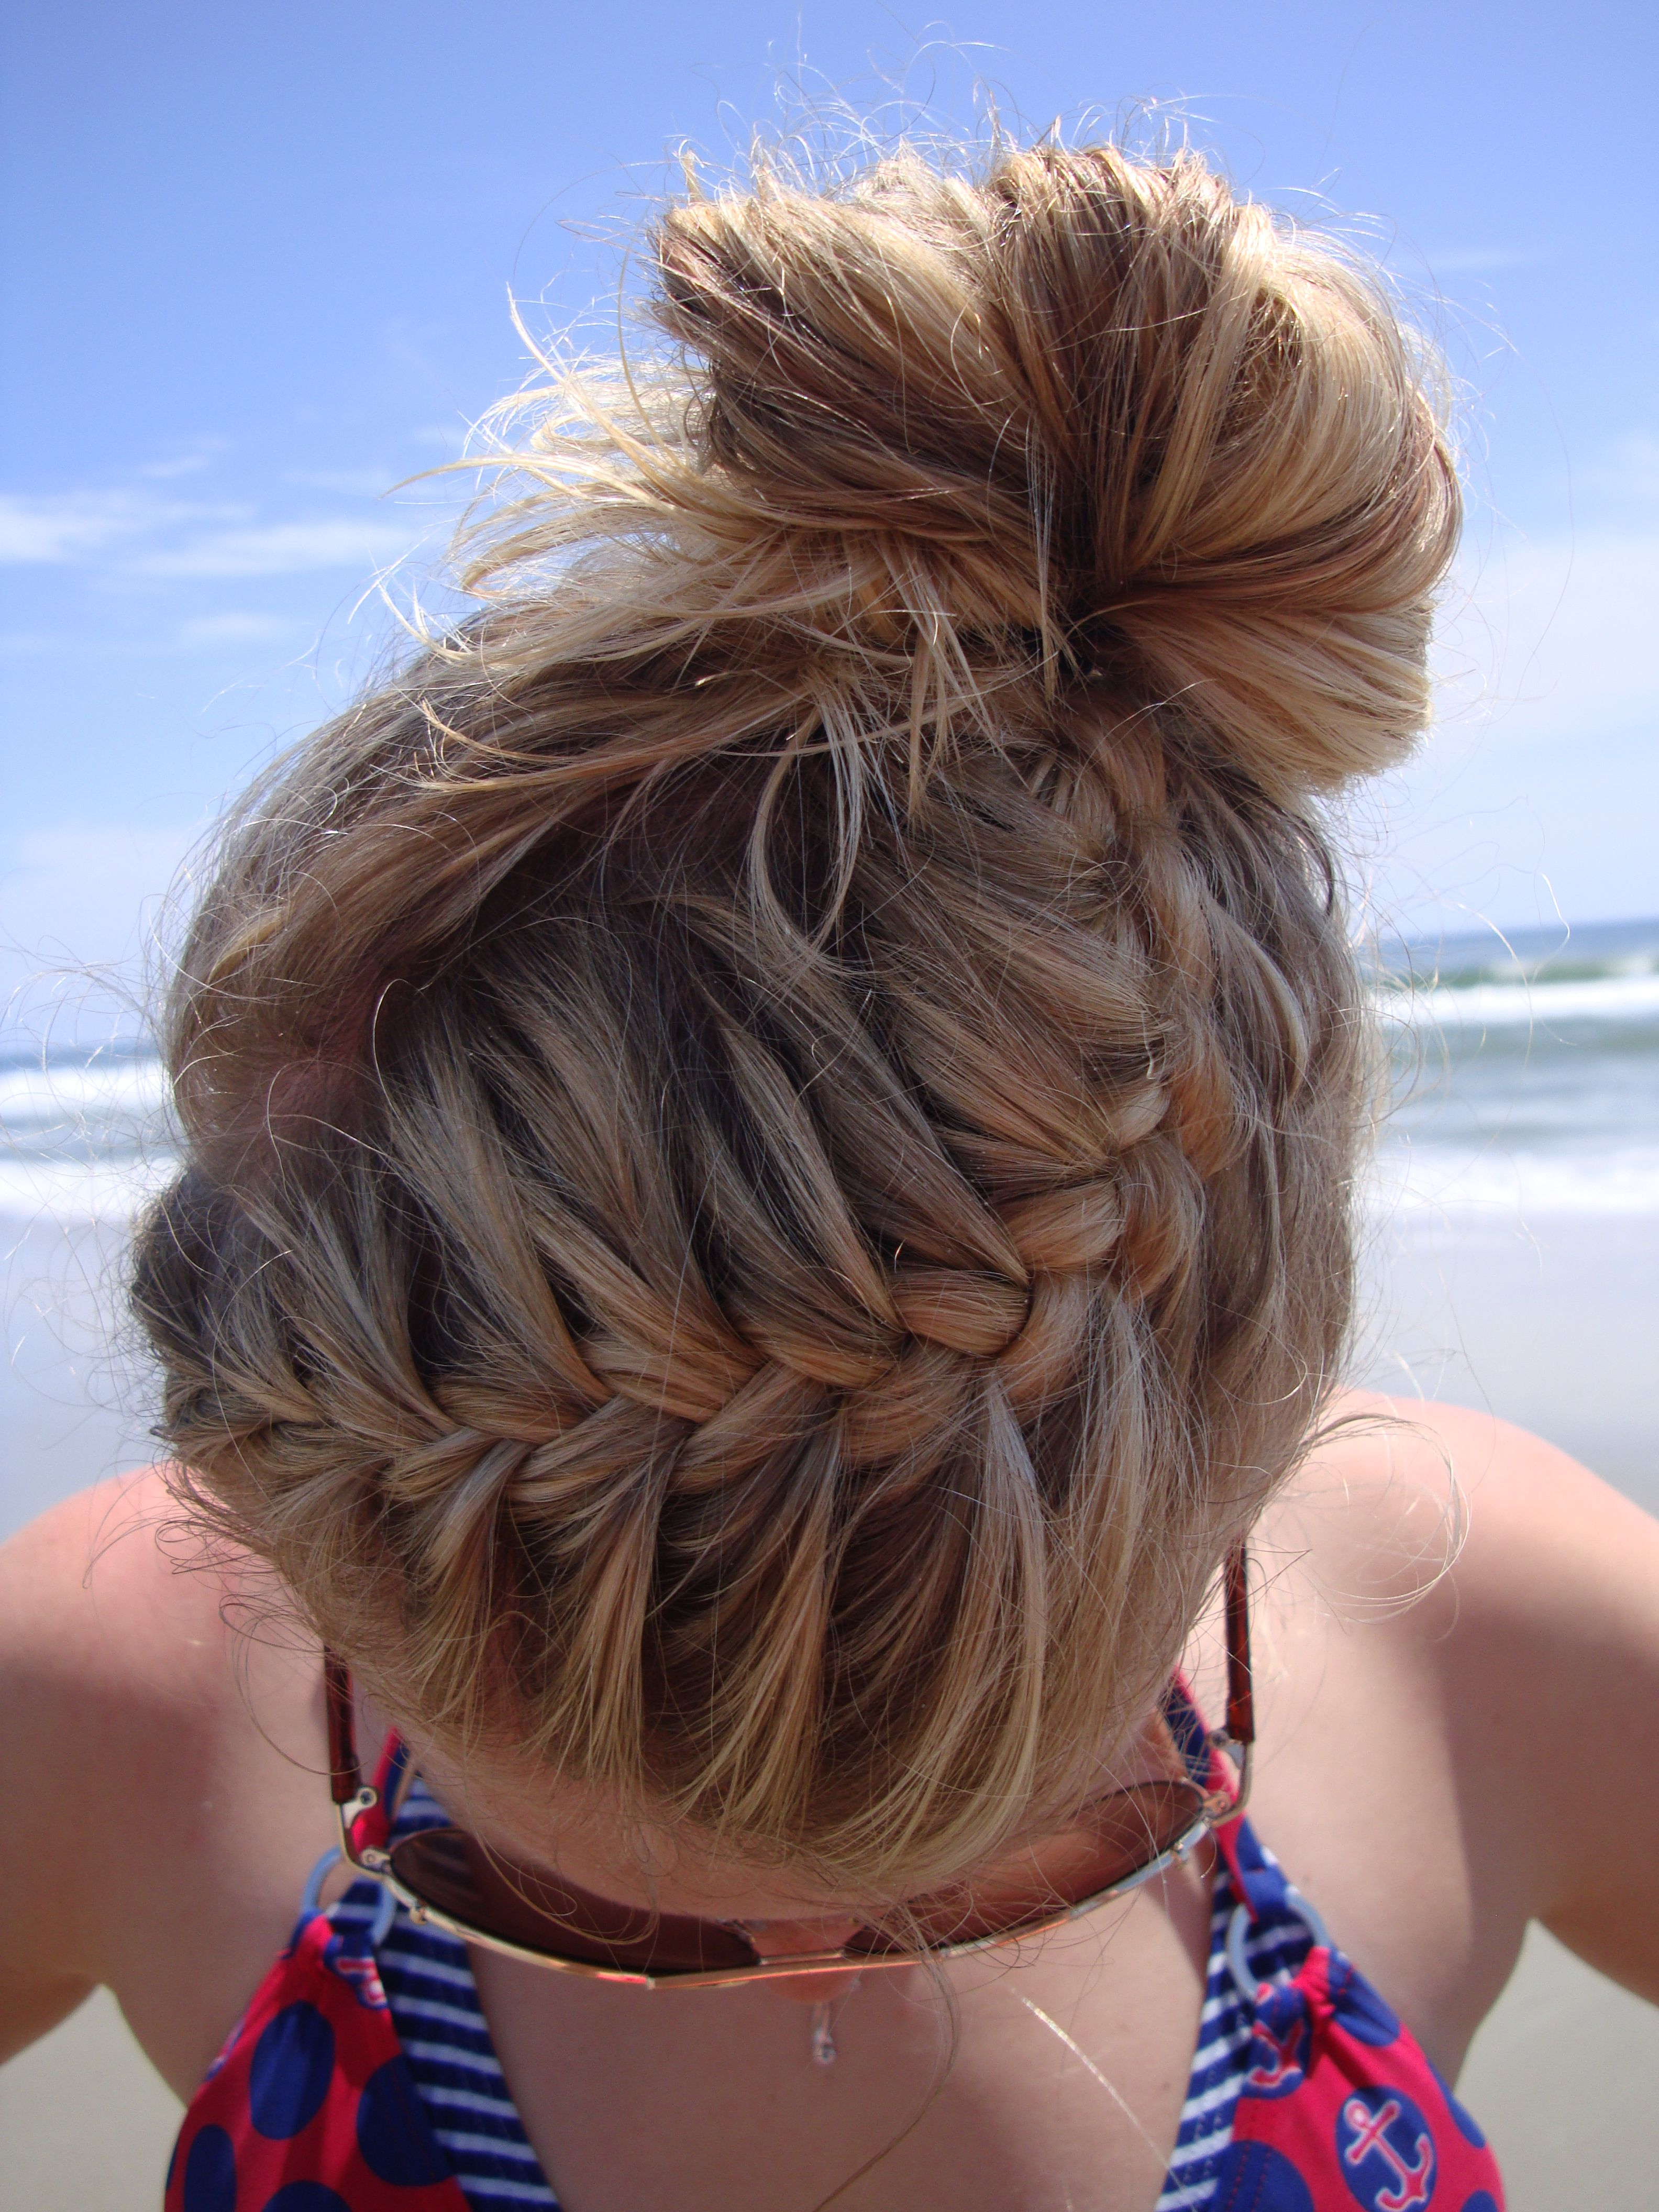 French Braid Hairstyles Classy 26 Pretty Braided Hairstyle For Summer  Pinterest  Beach Braids